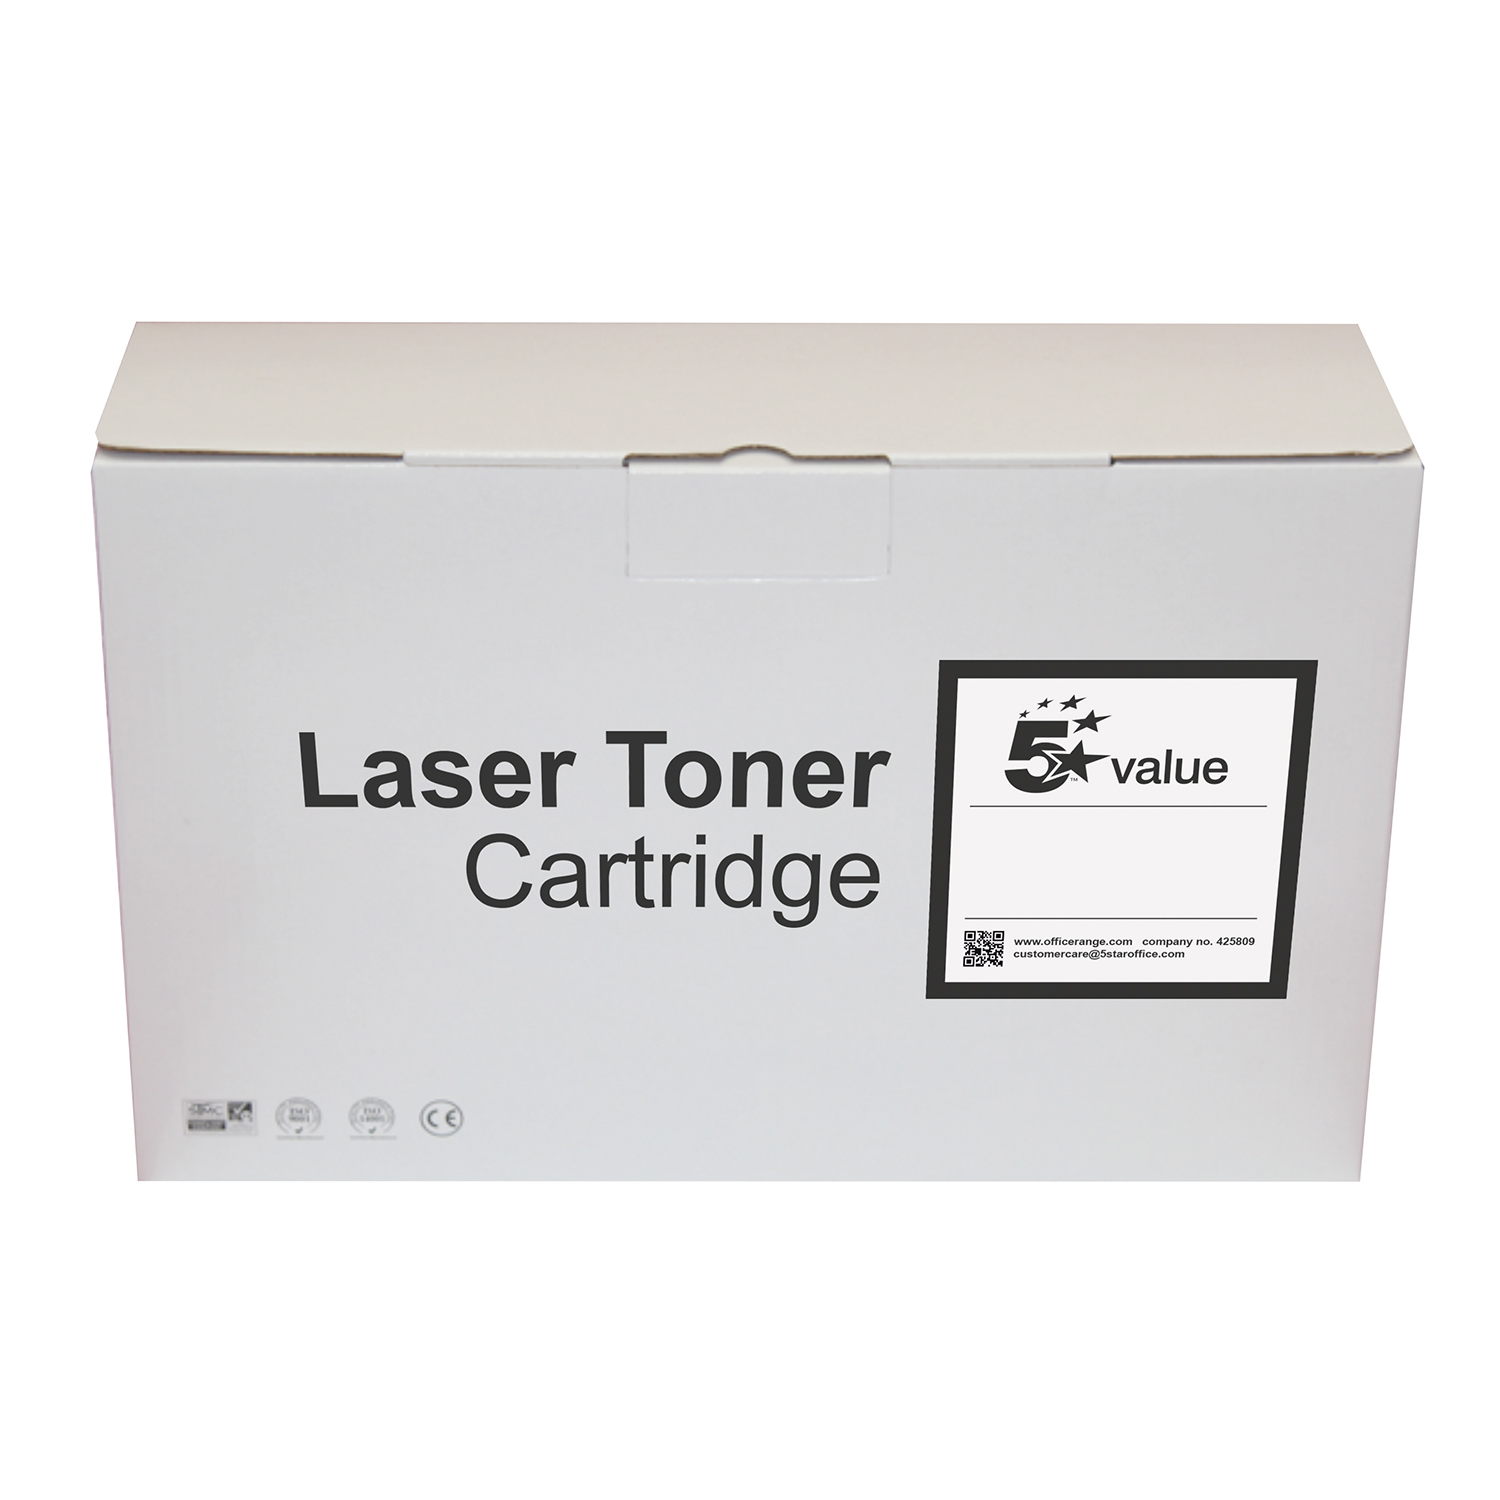 5 Star Value Remanufactured Laser Toner Cartridge Page Life 2300pp Black [HP No. 05A CE505A Alternative]